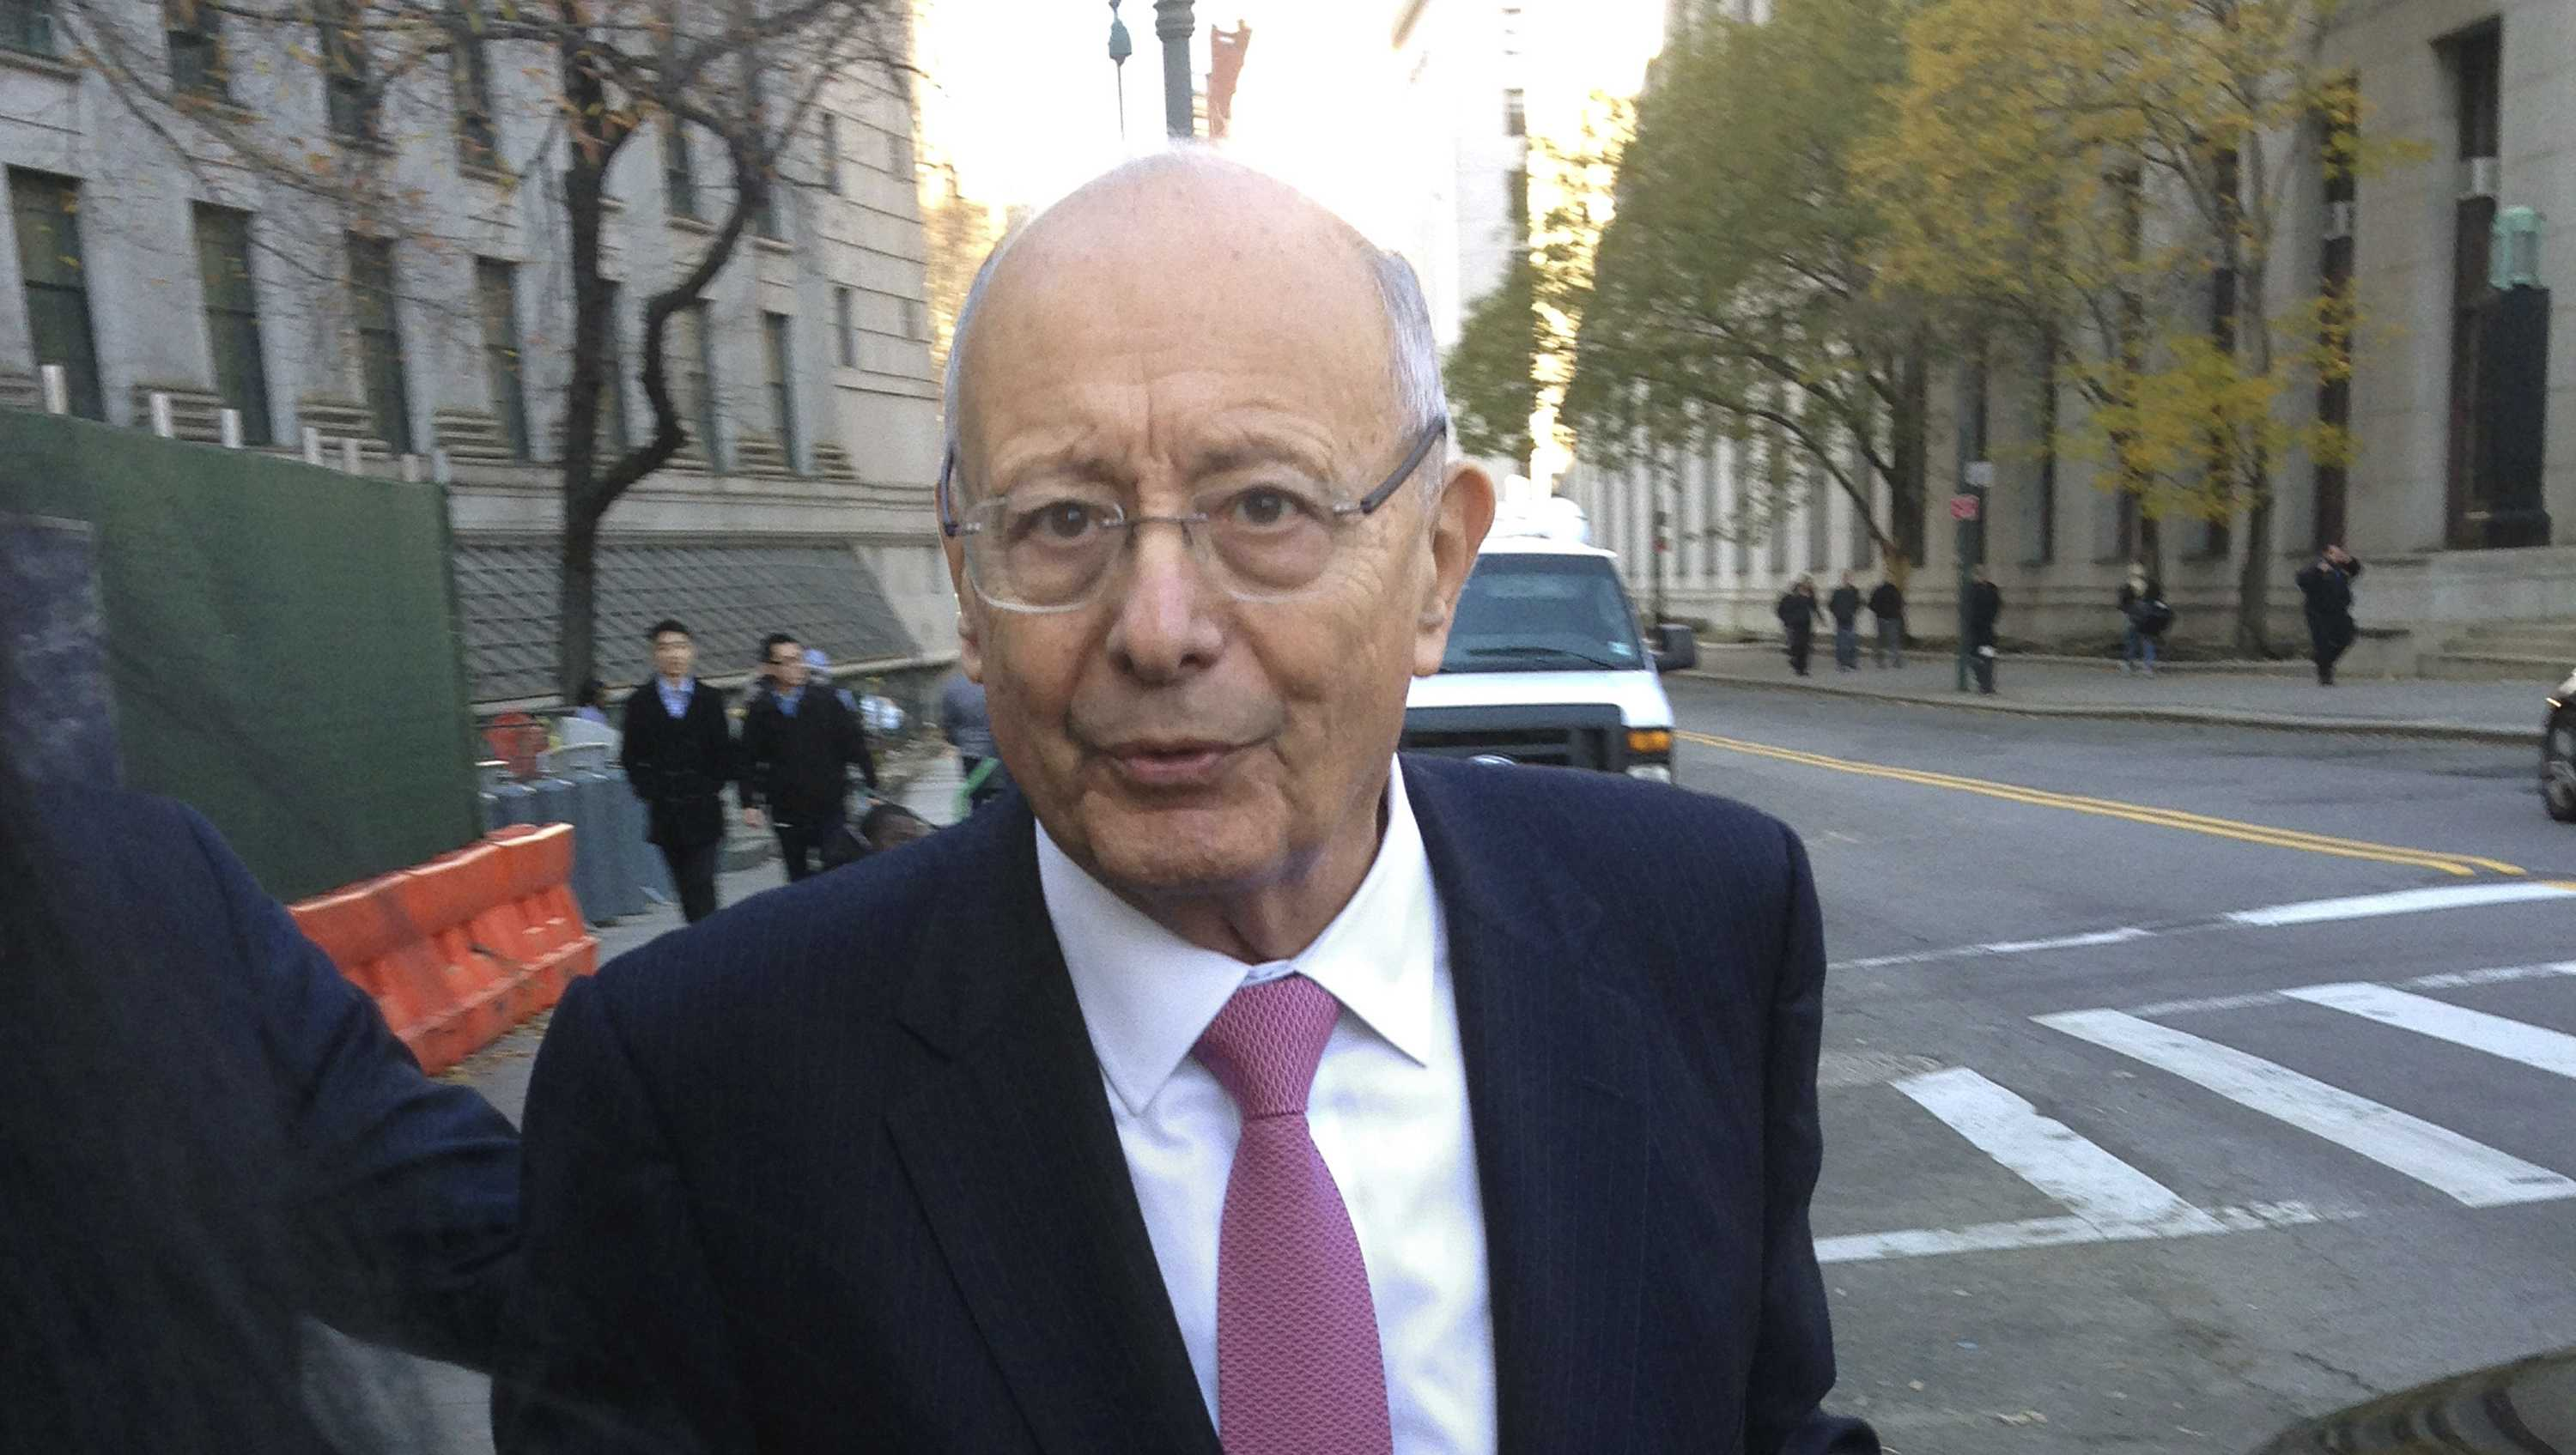 In a Friday, Dec. 4, 2015 file photo, former U.S. Sen. Alfonse D'Amato leaves Manhattan federal court in New York.